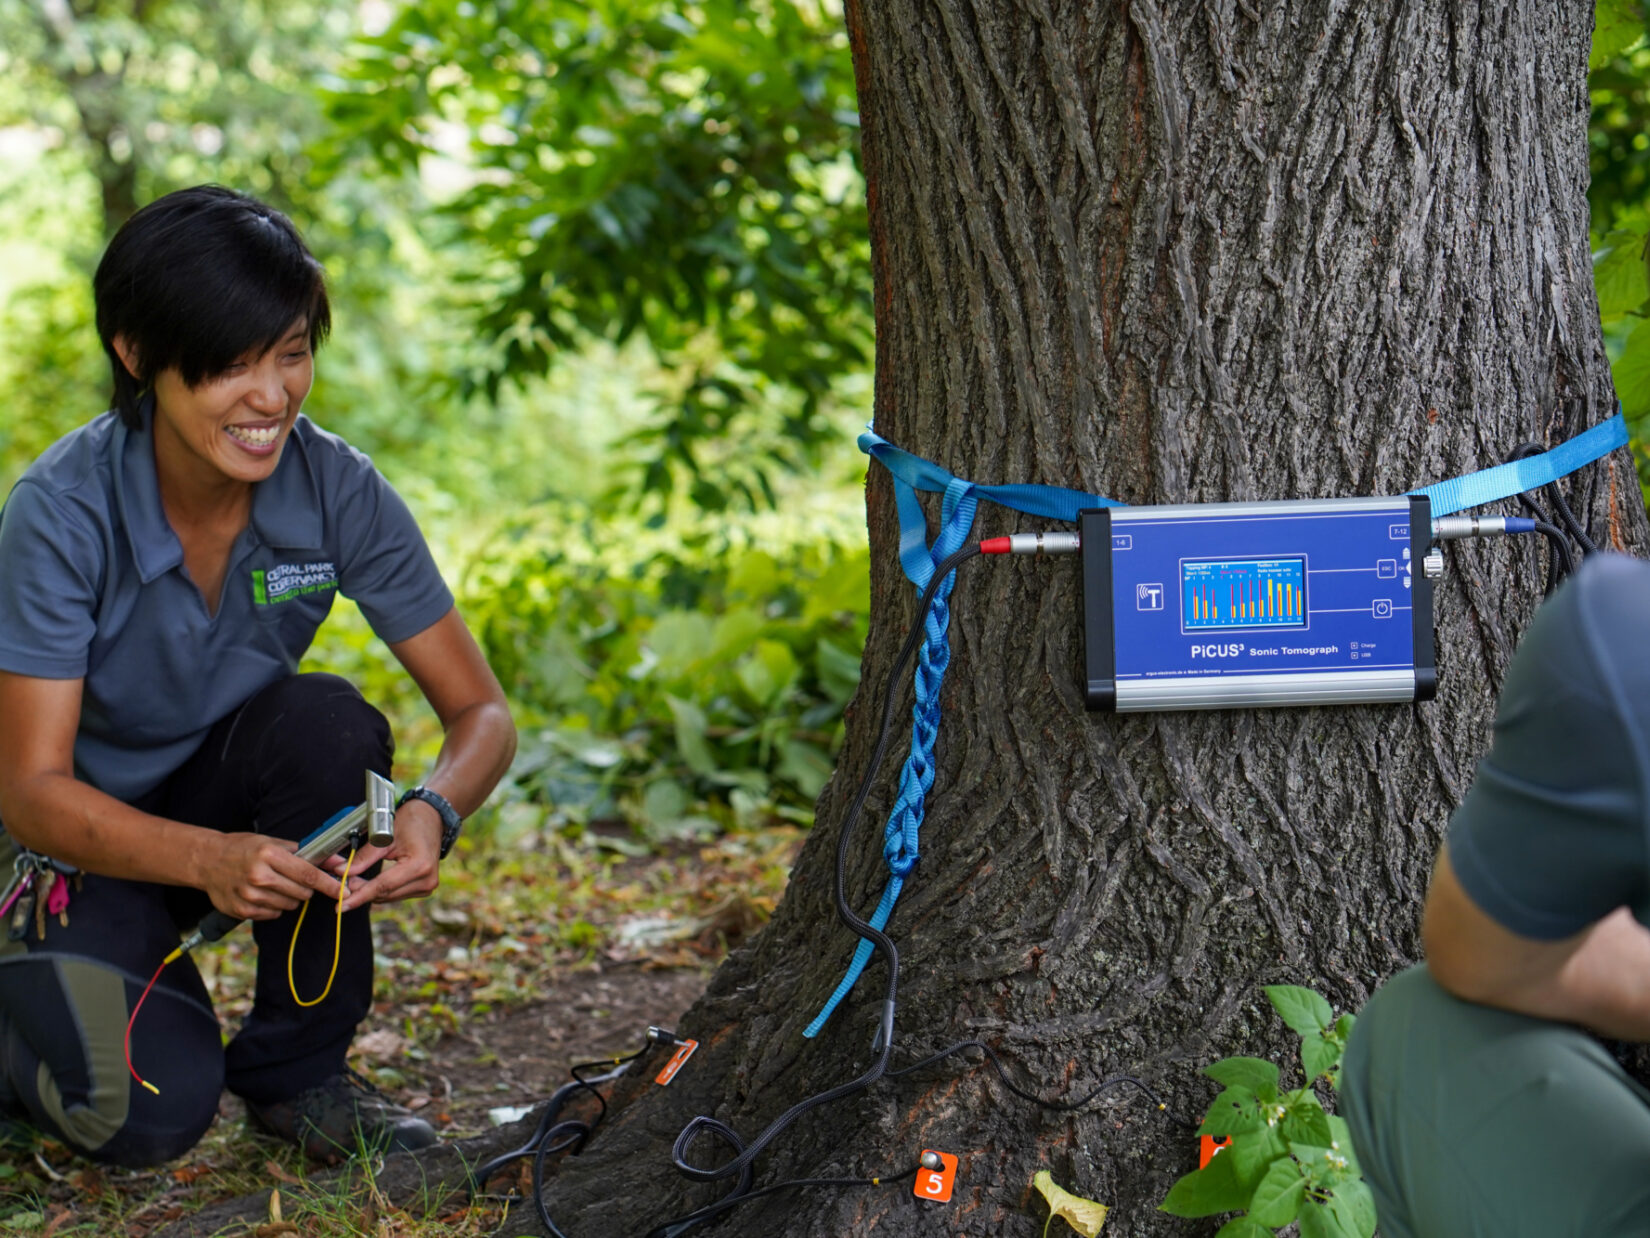 Arborists measuring the circumference of a Park tree